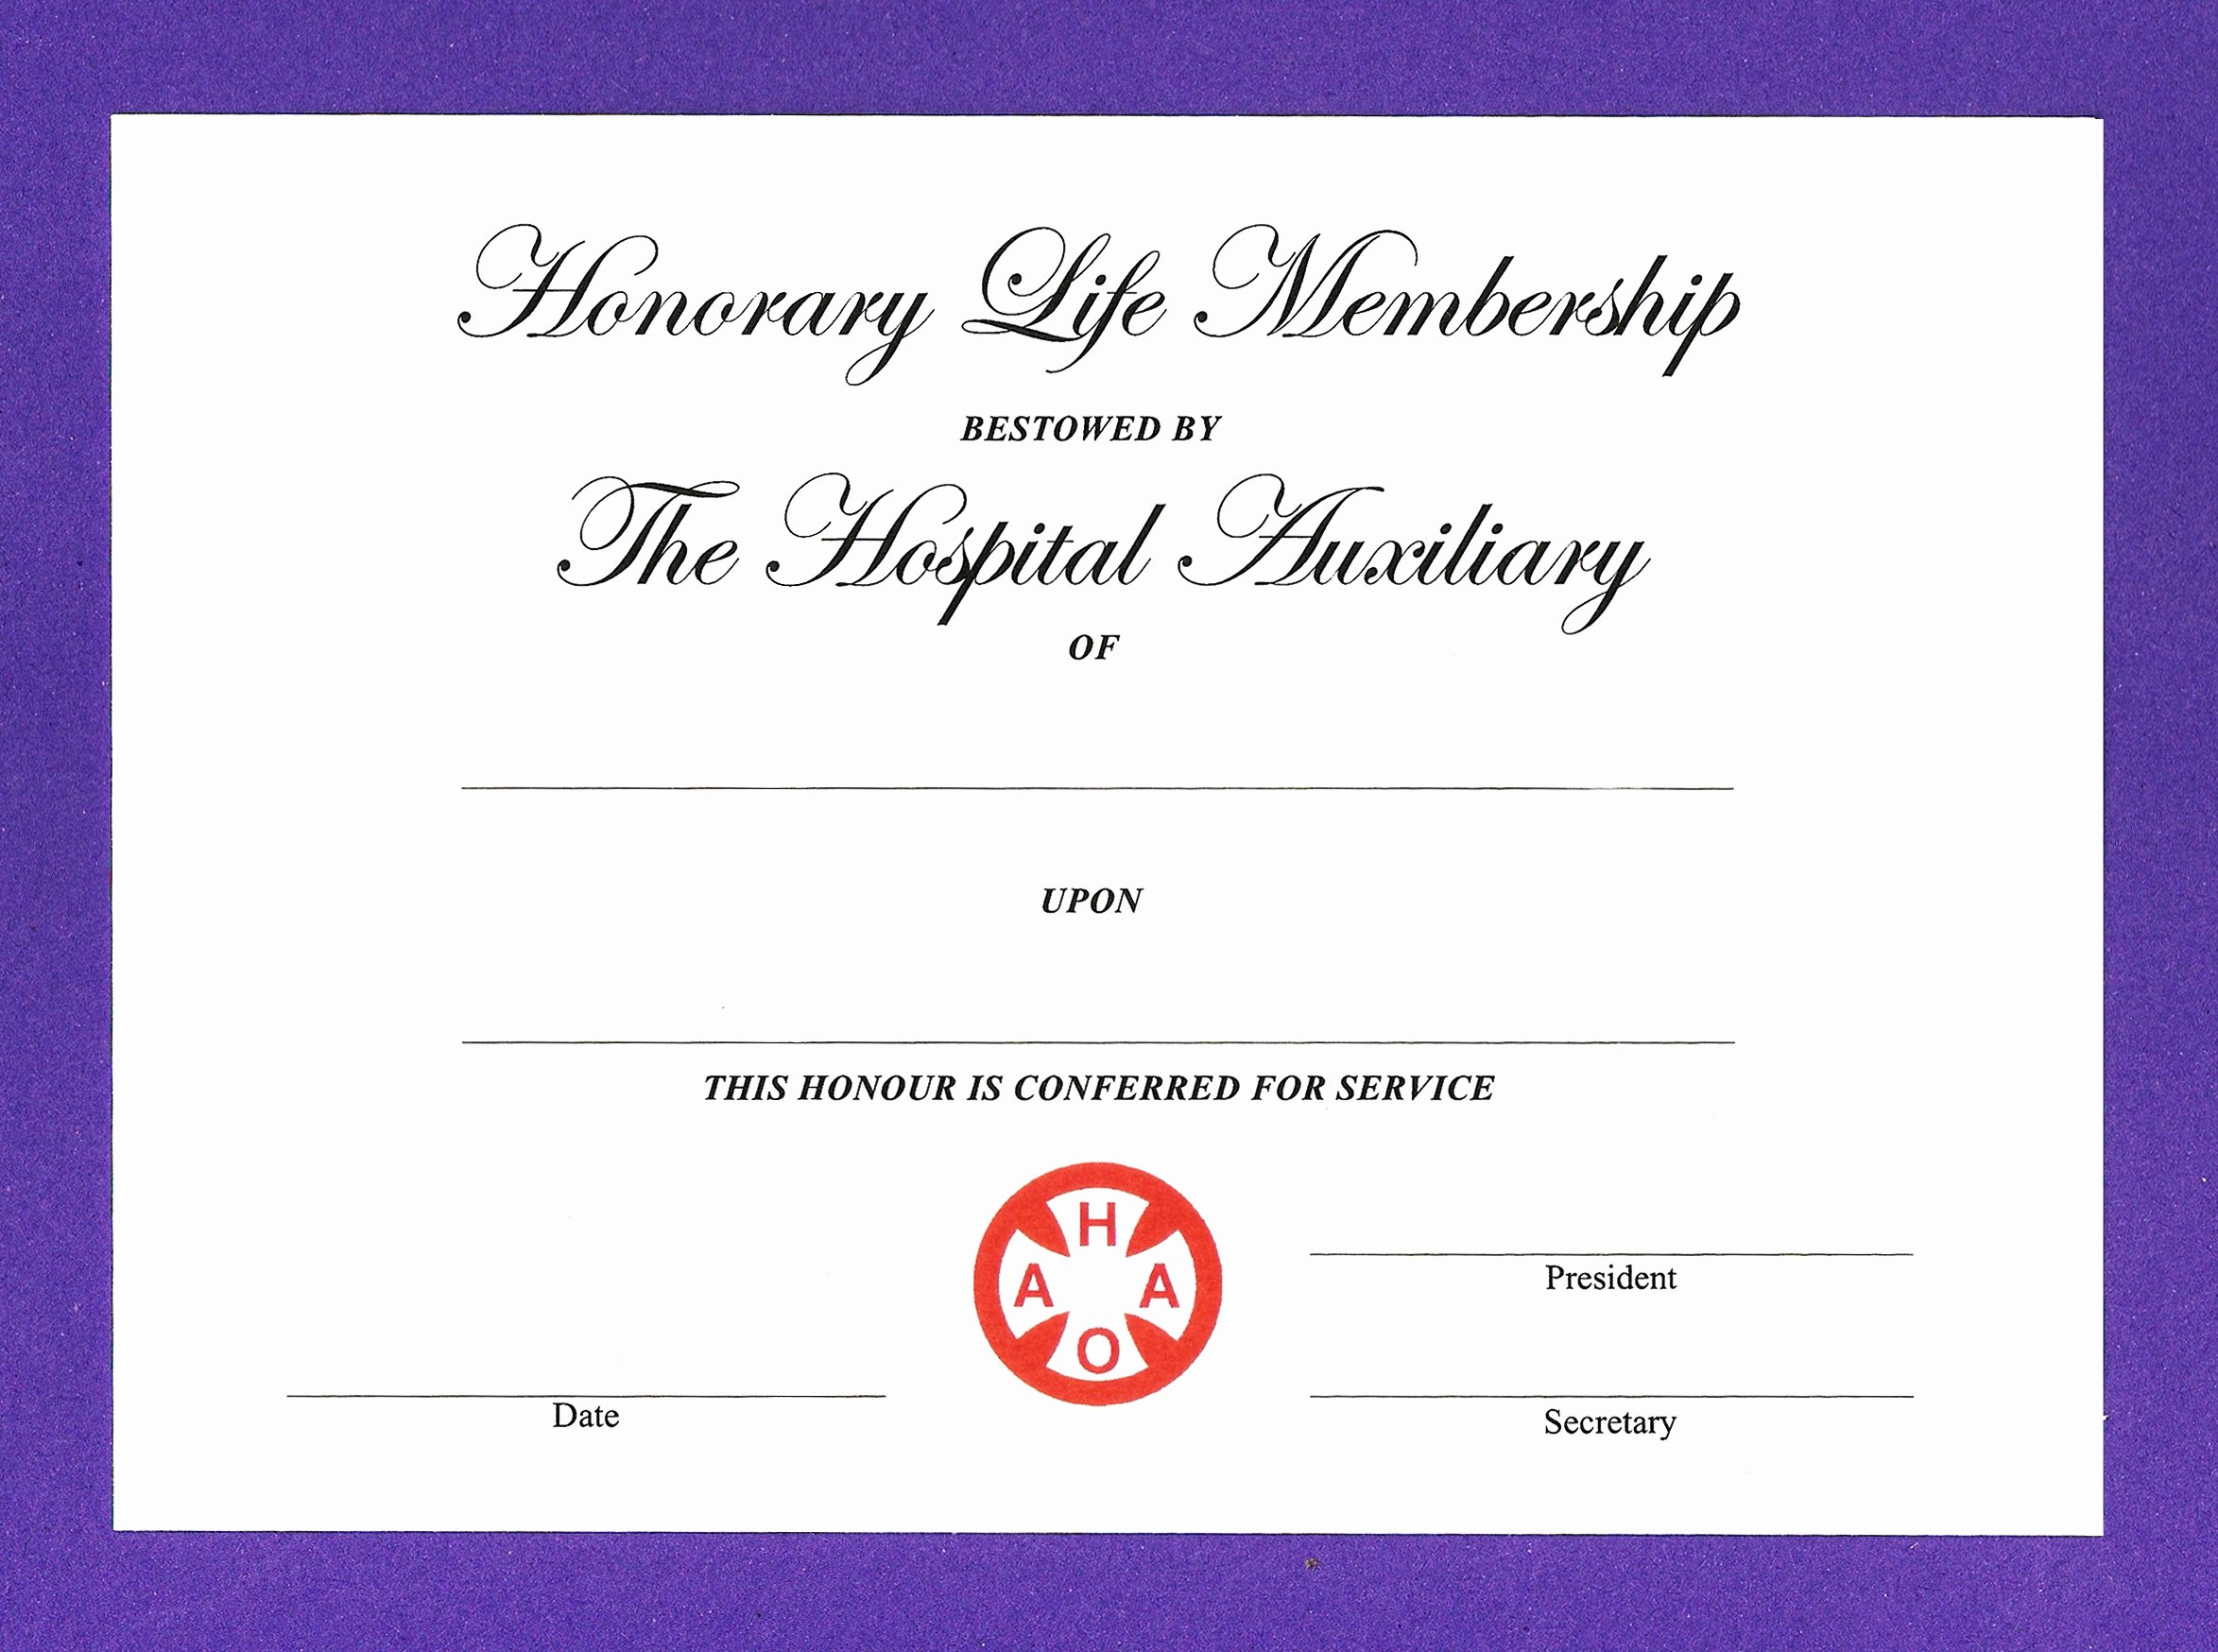 Honorary Member Certificate Template Beautiful 14 Honorary Life Certificate Templates Pdf Docx